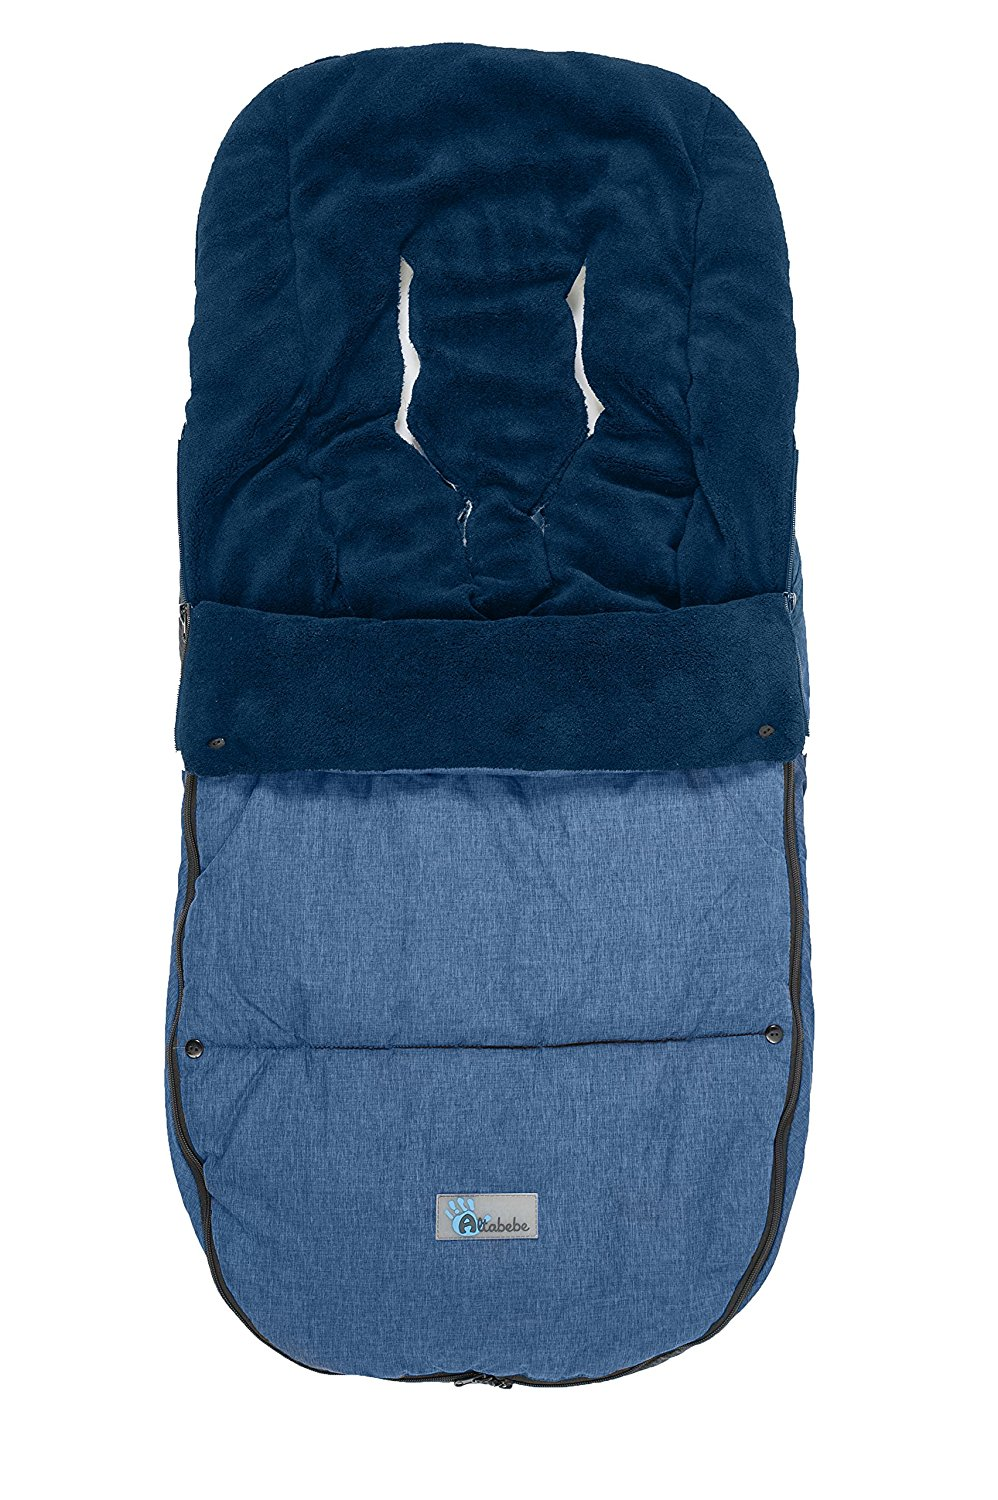 Зимний конверт Alpin Bugaboo, navy/blueЗимние конверты<br>Зимний конверт Alpin Bugaboo, navy/blue<br>